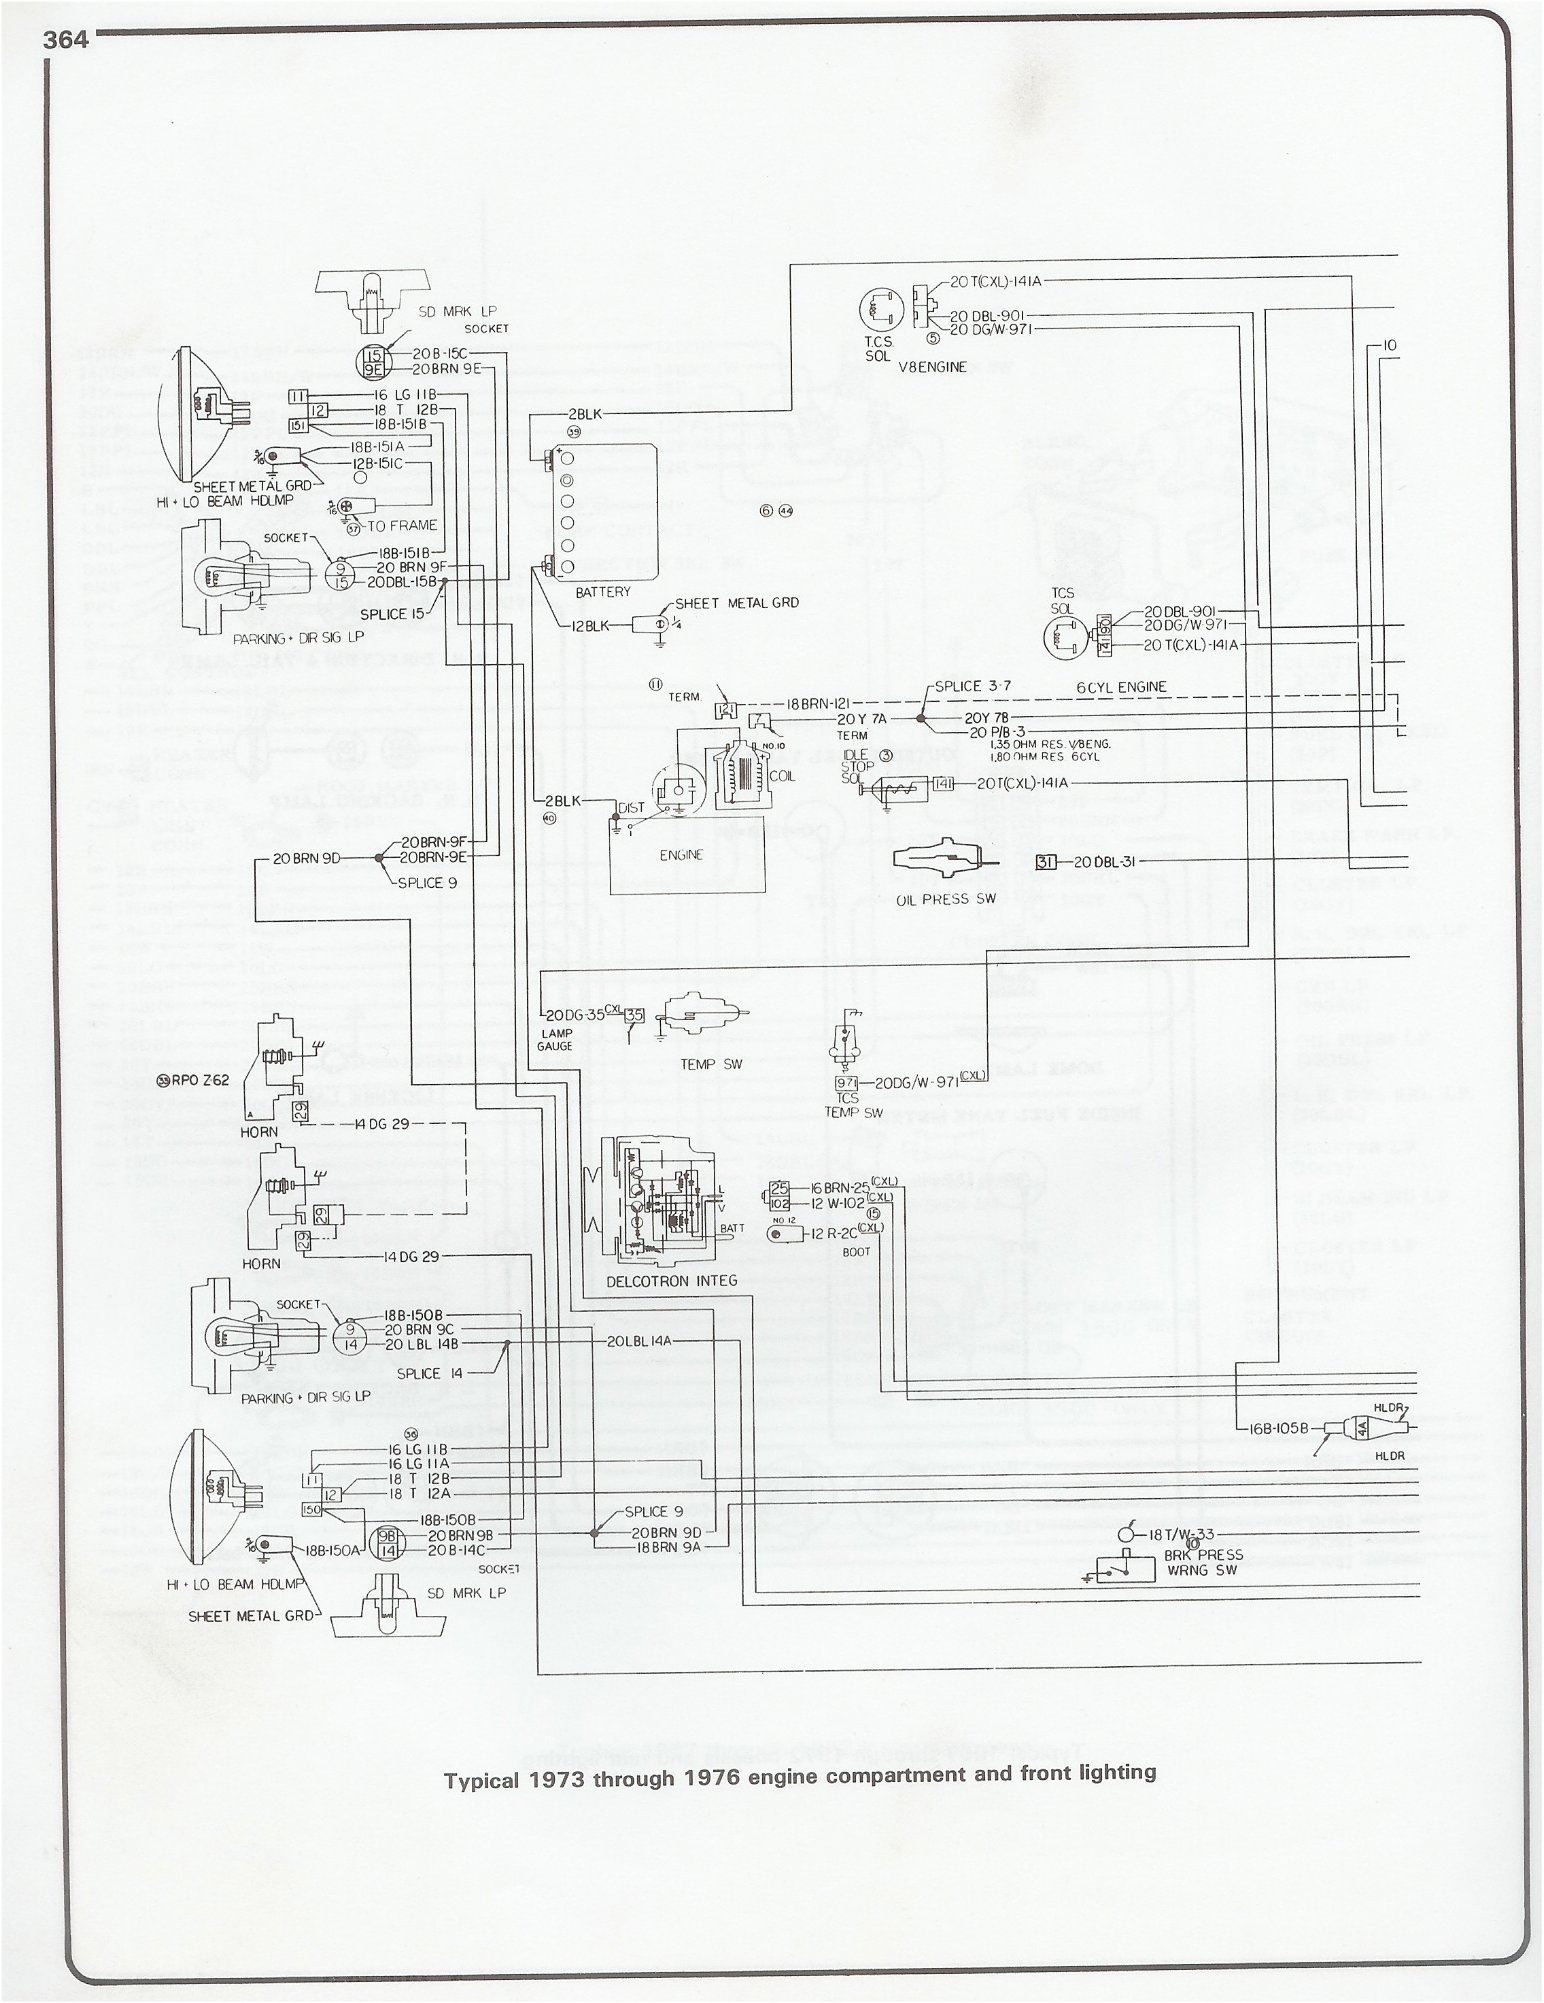 hight resolution of complete 73 87 wiring diagrams 73 76 engine and front lighting